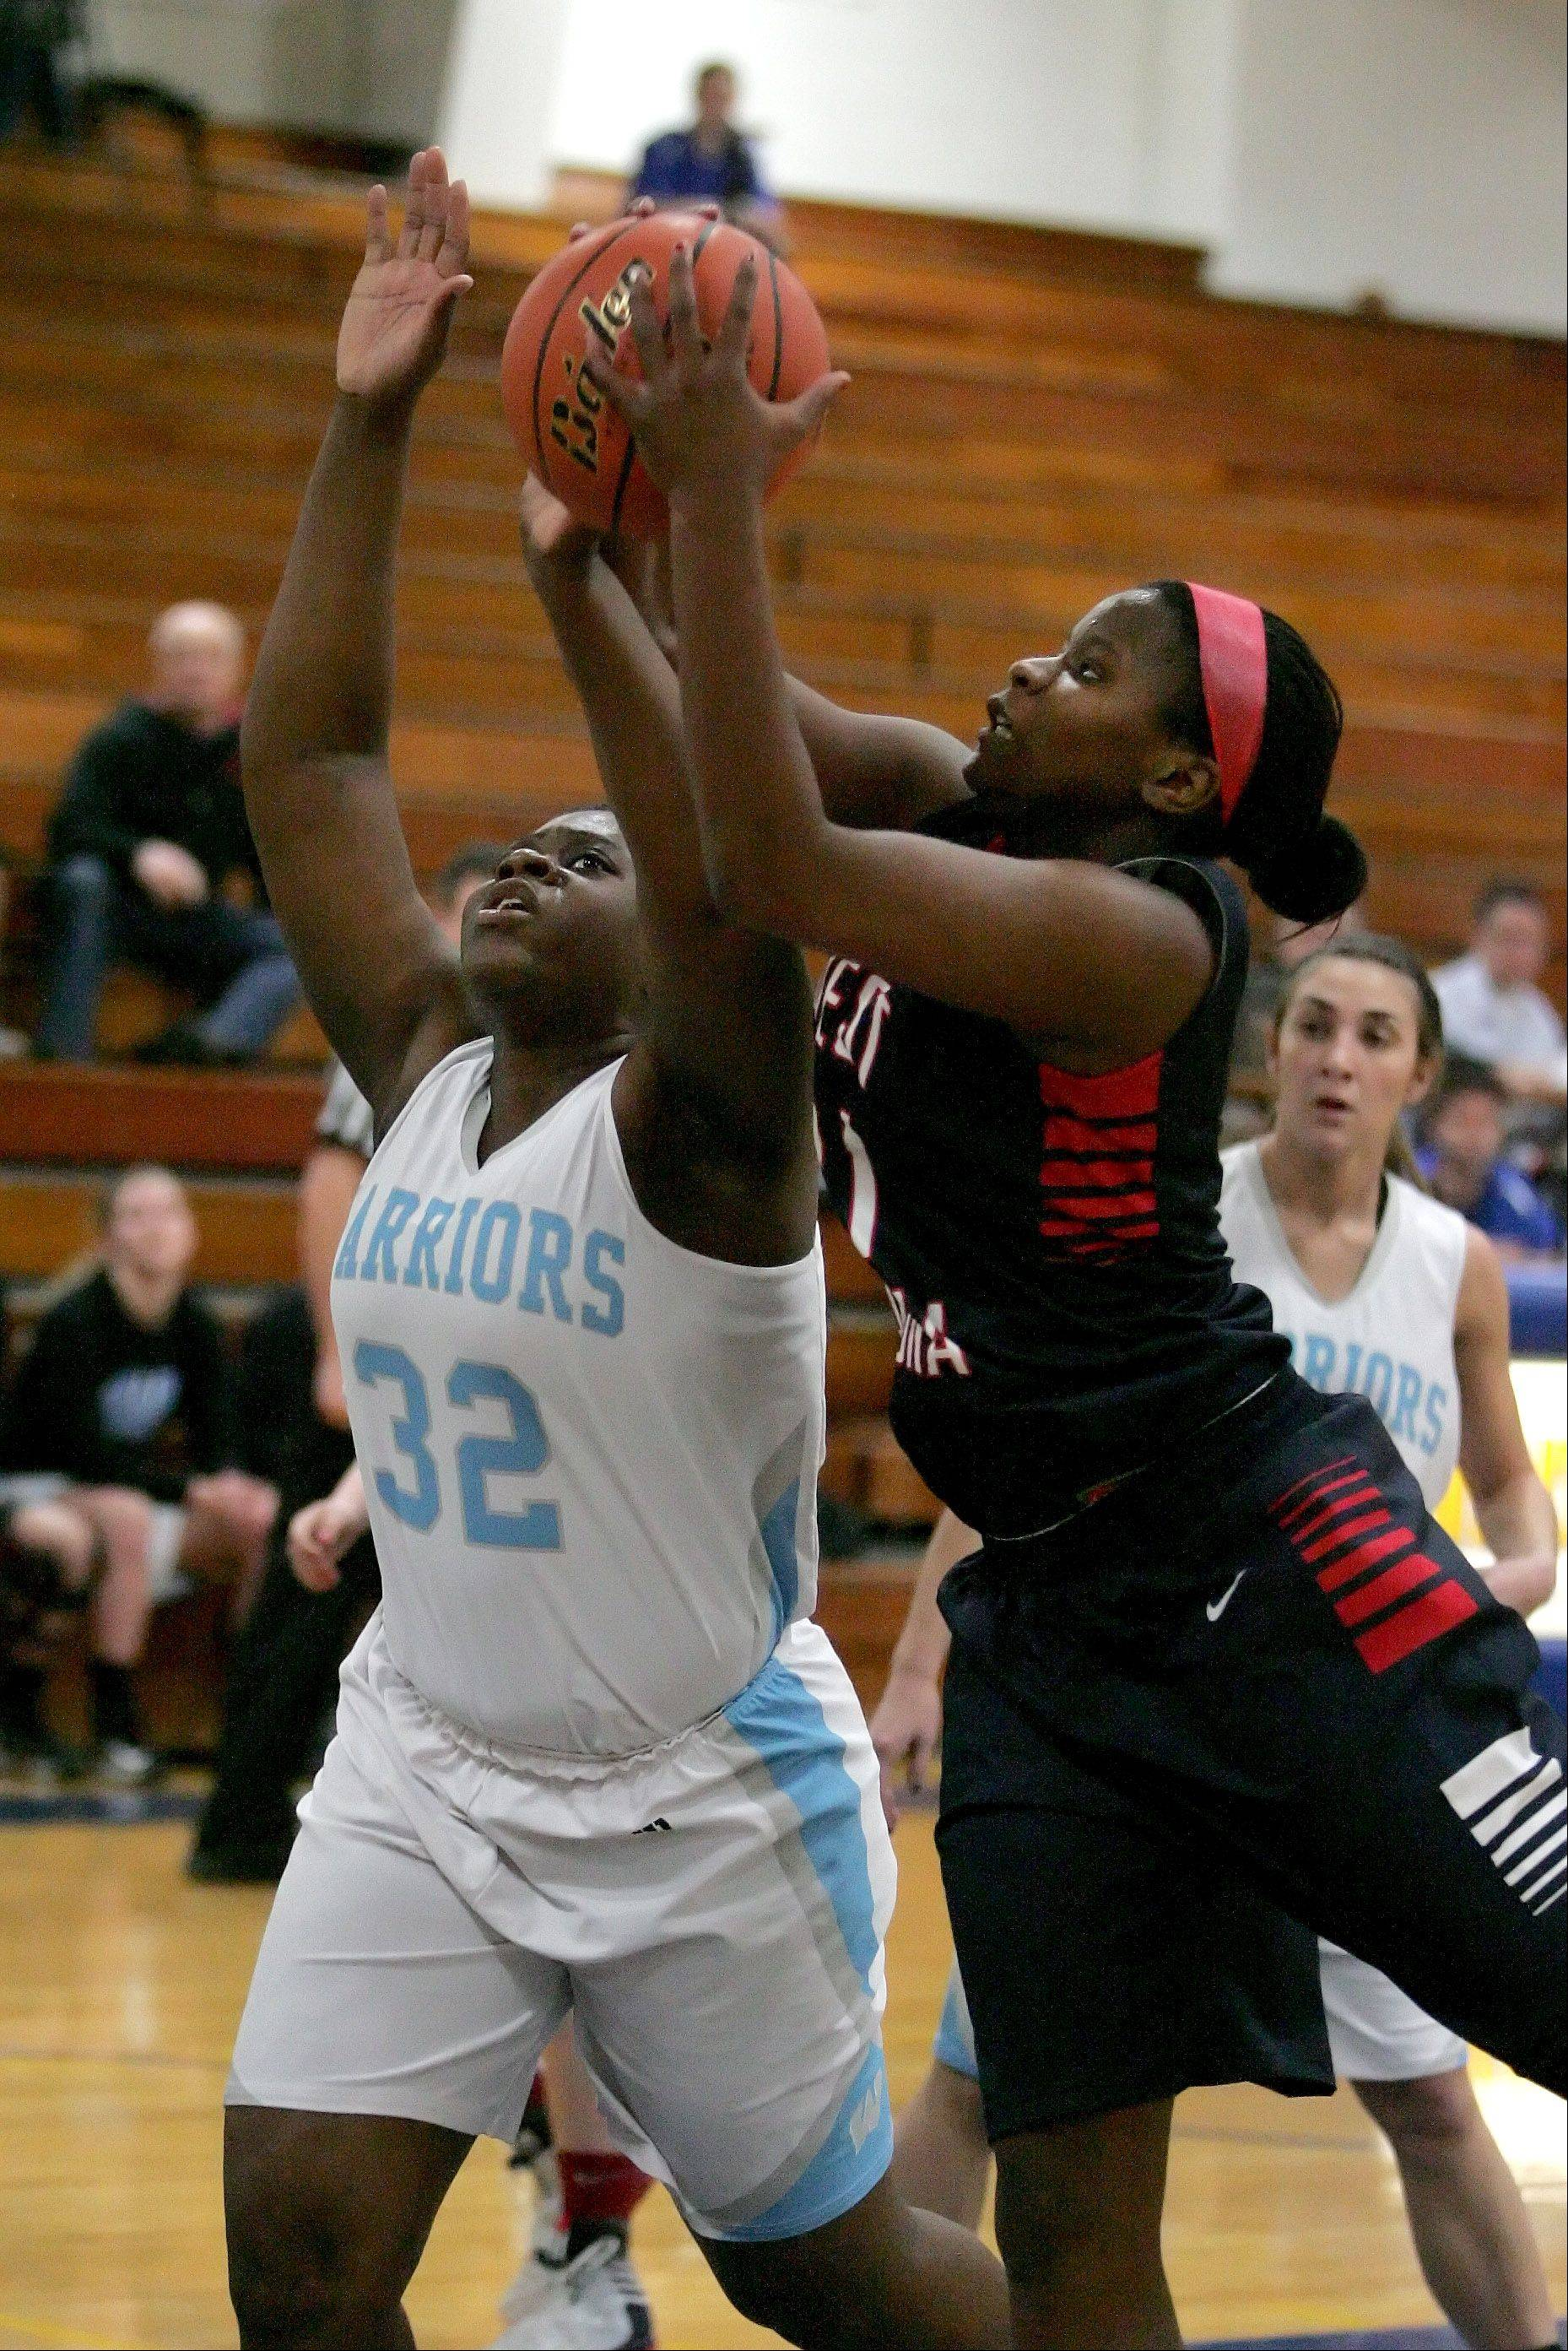 Emma Udota of Willowbrook, left and Elizabeth Skaggs, right, of West Aurora go up for a rebound in girls basketball action at the 2012 Bill Neibch Holiday Tournament at Wheaton North High School on Wednesday.